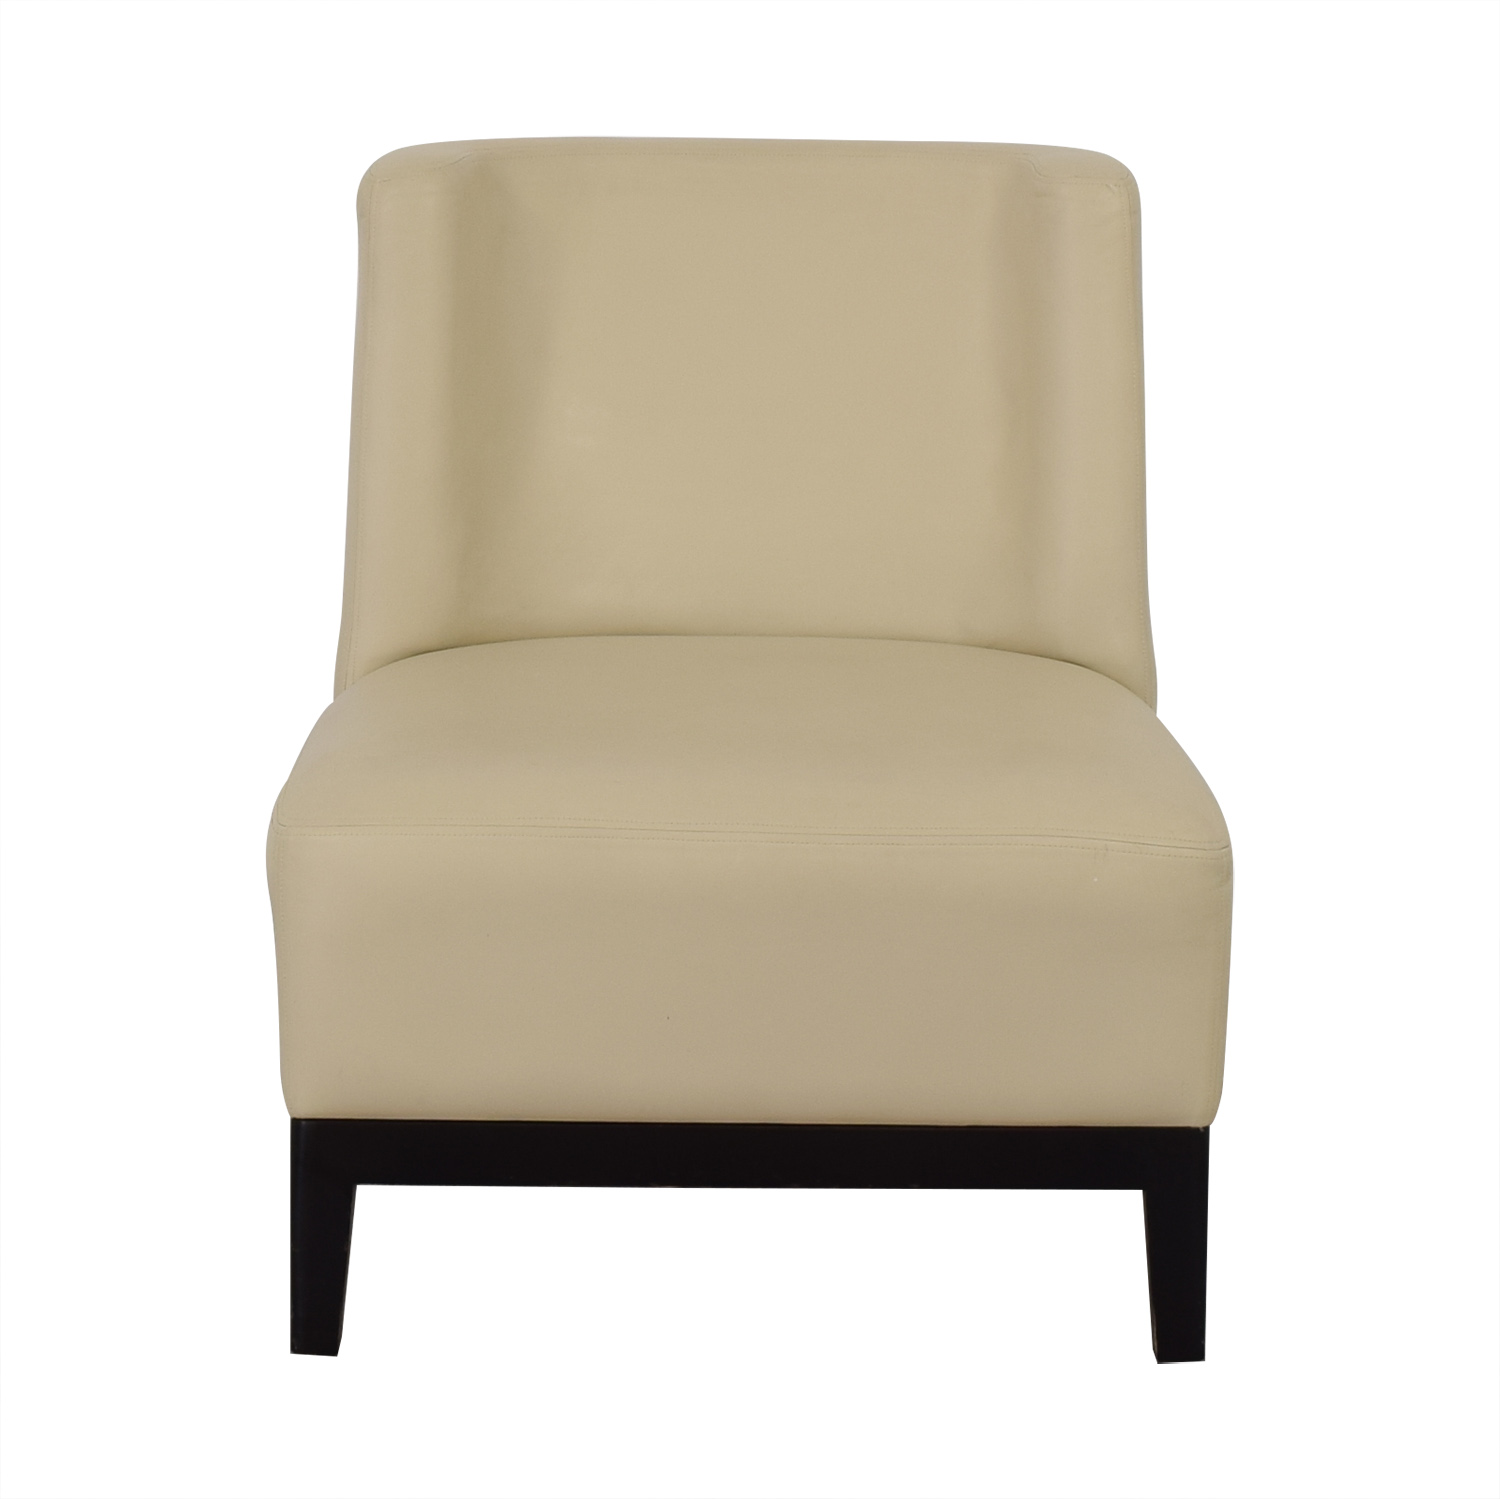 Armless Lounge Chair / Chairs